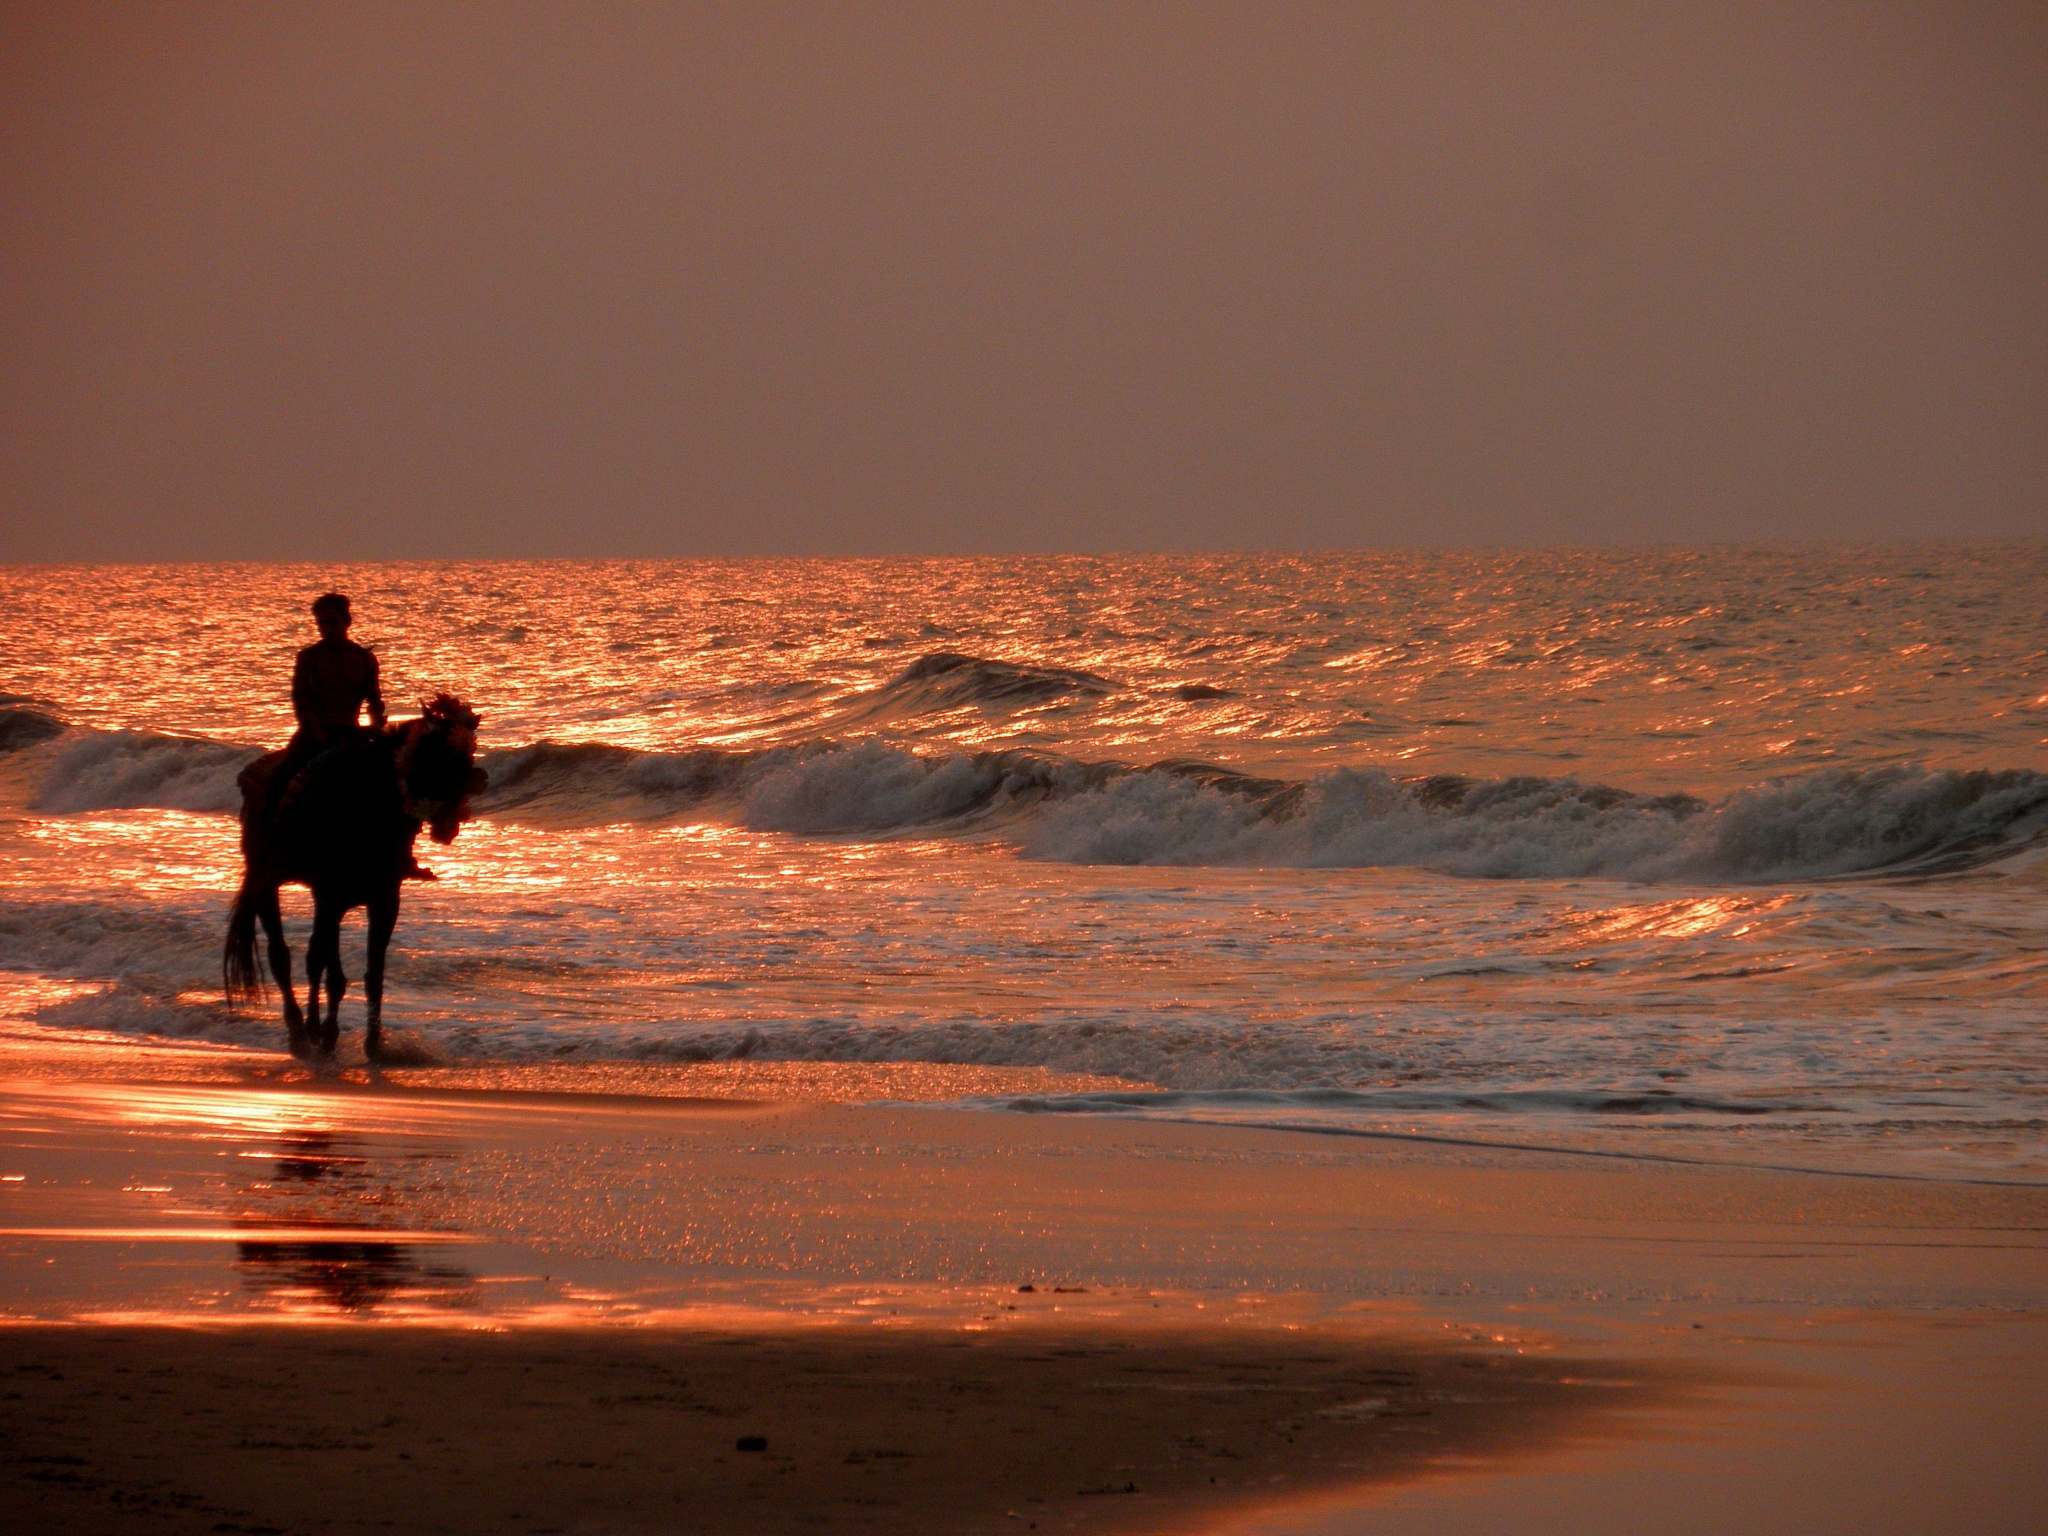 By the golden waves..... by Gautam Tarafder